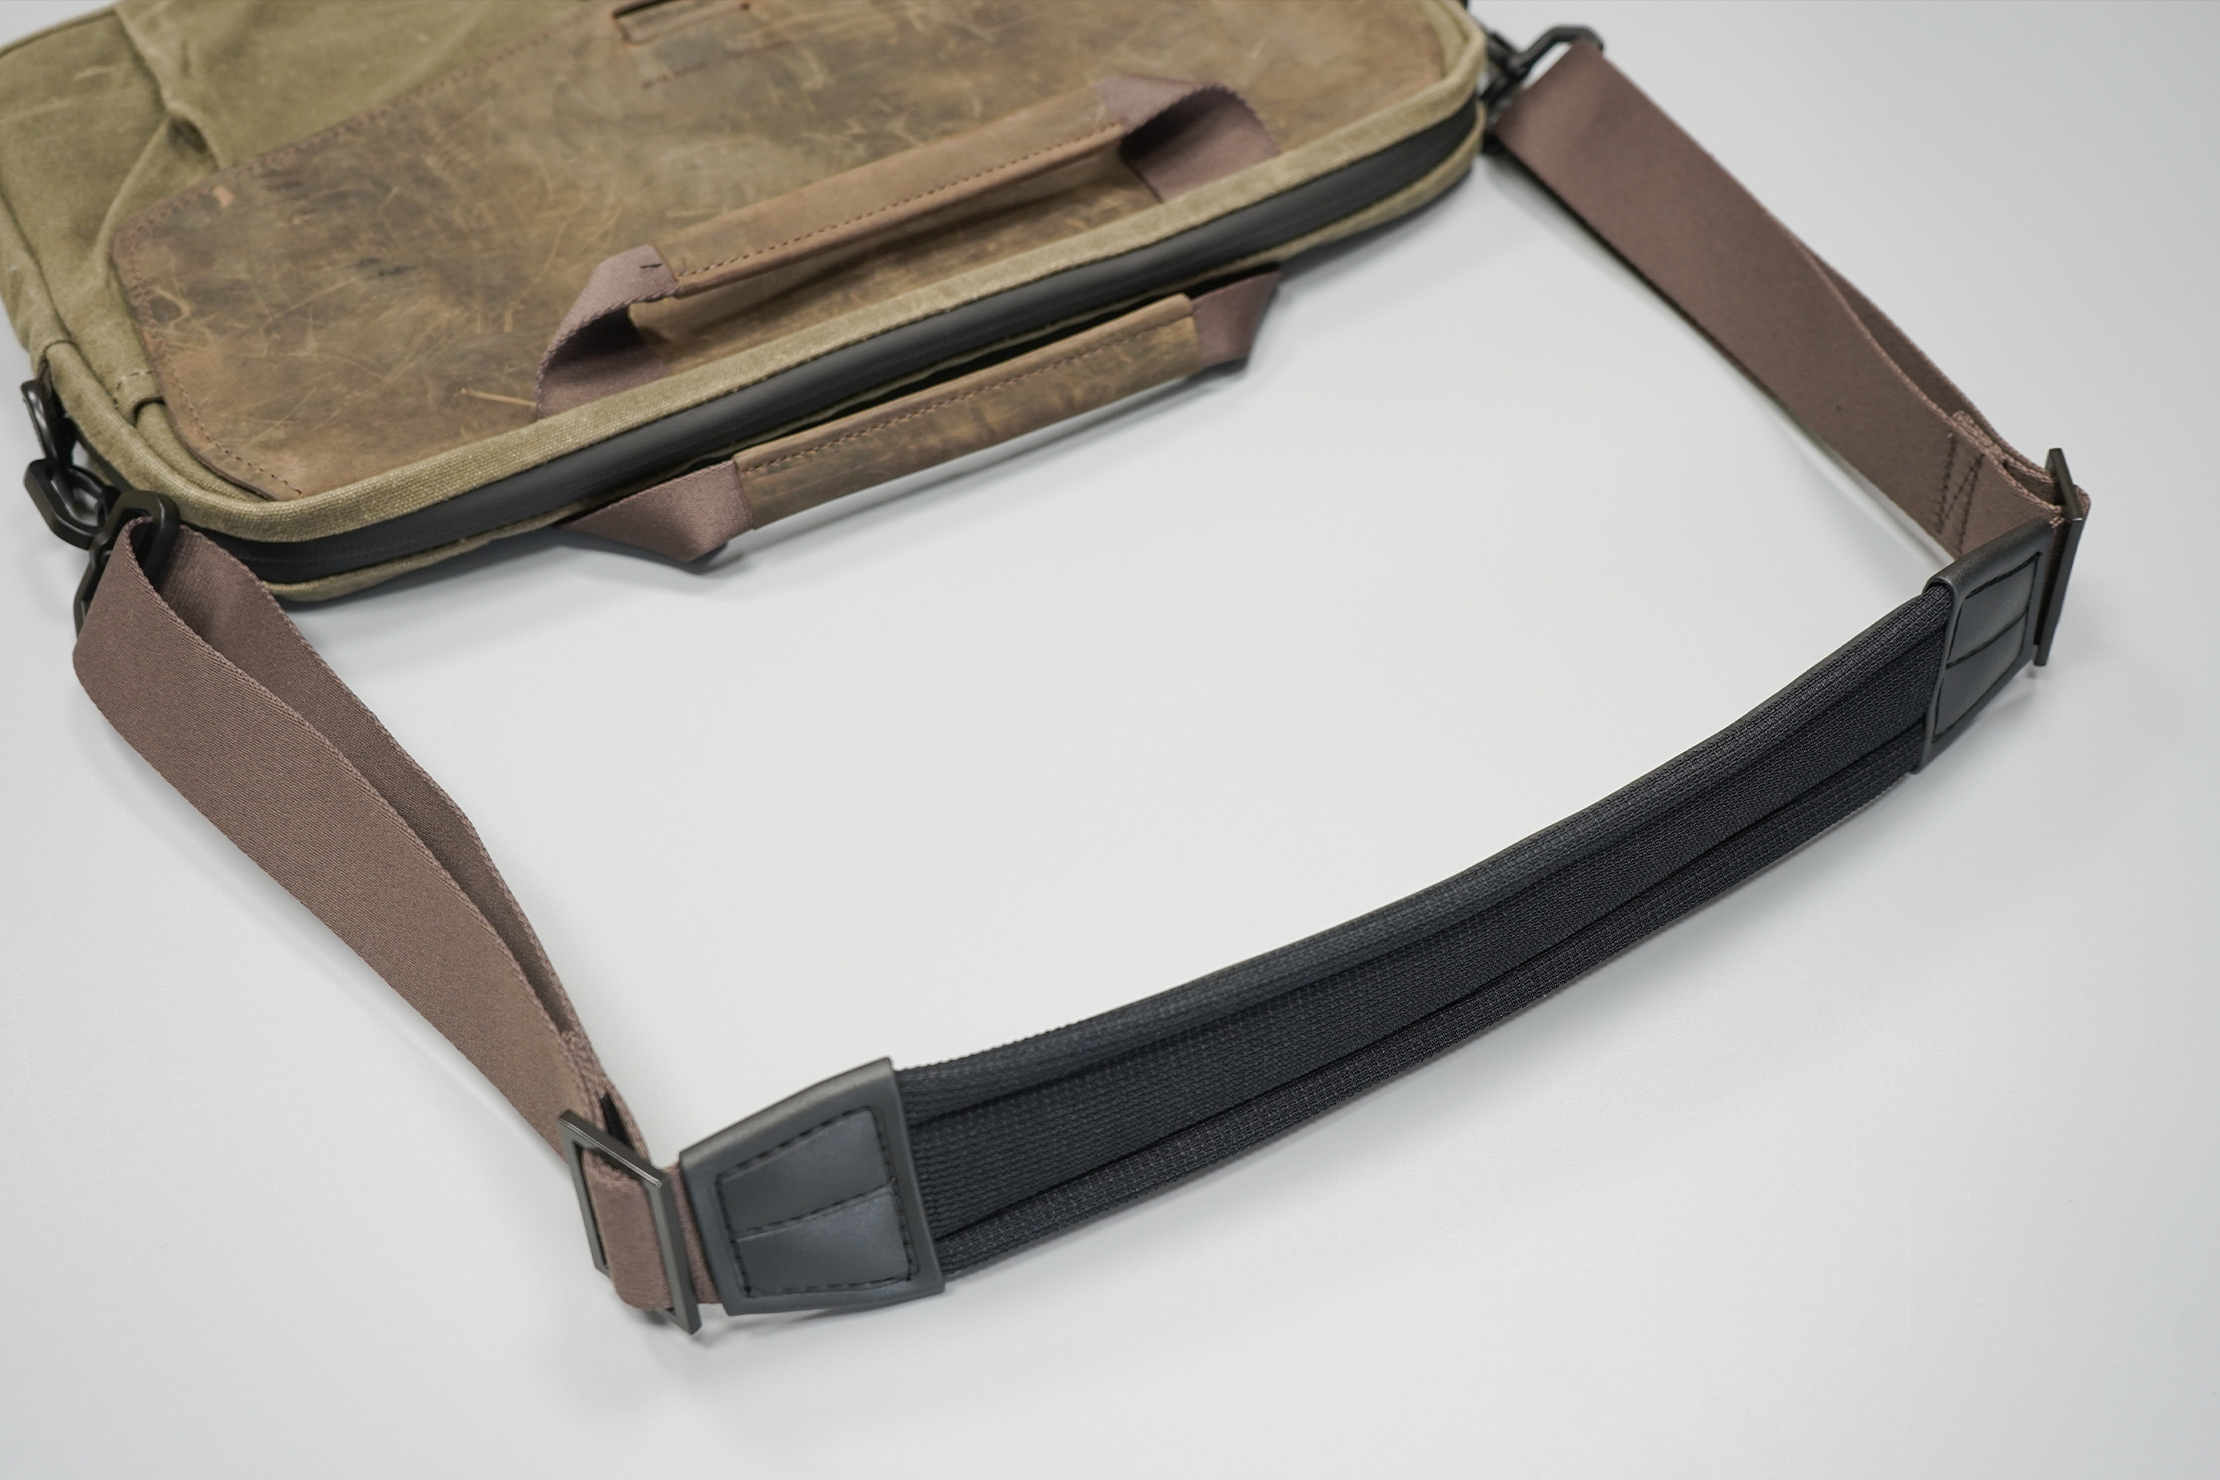 WaterField Designs Outback Duo Laptop Brief | Supreme Suspension Shoulder Strap—how's that for alliteration?